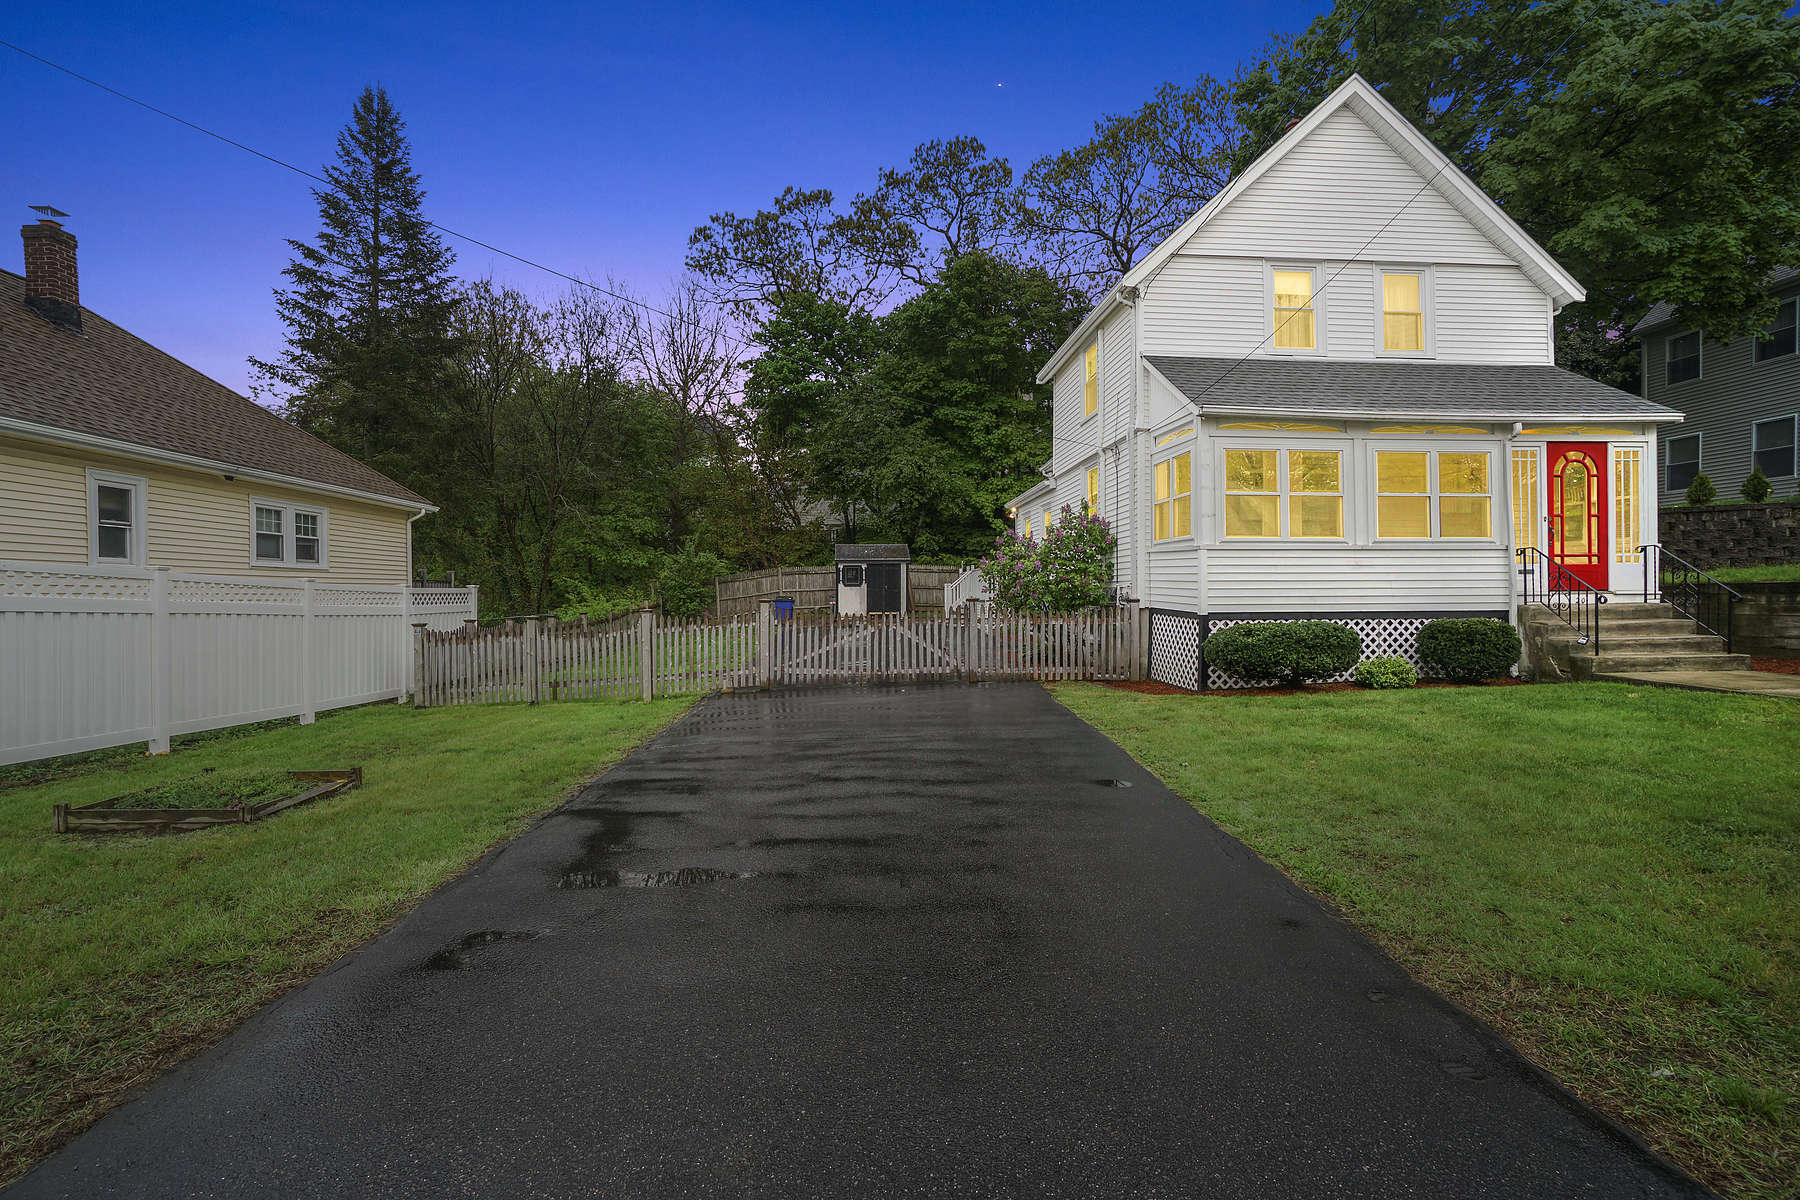 Single Family Homes for Active at Beautiful Single Family Home In The Heart Of Malden's Forestdale 20 Havelock St Malden, Massachusetts 02148 United States